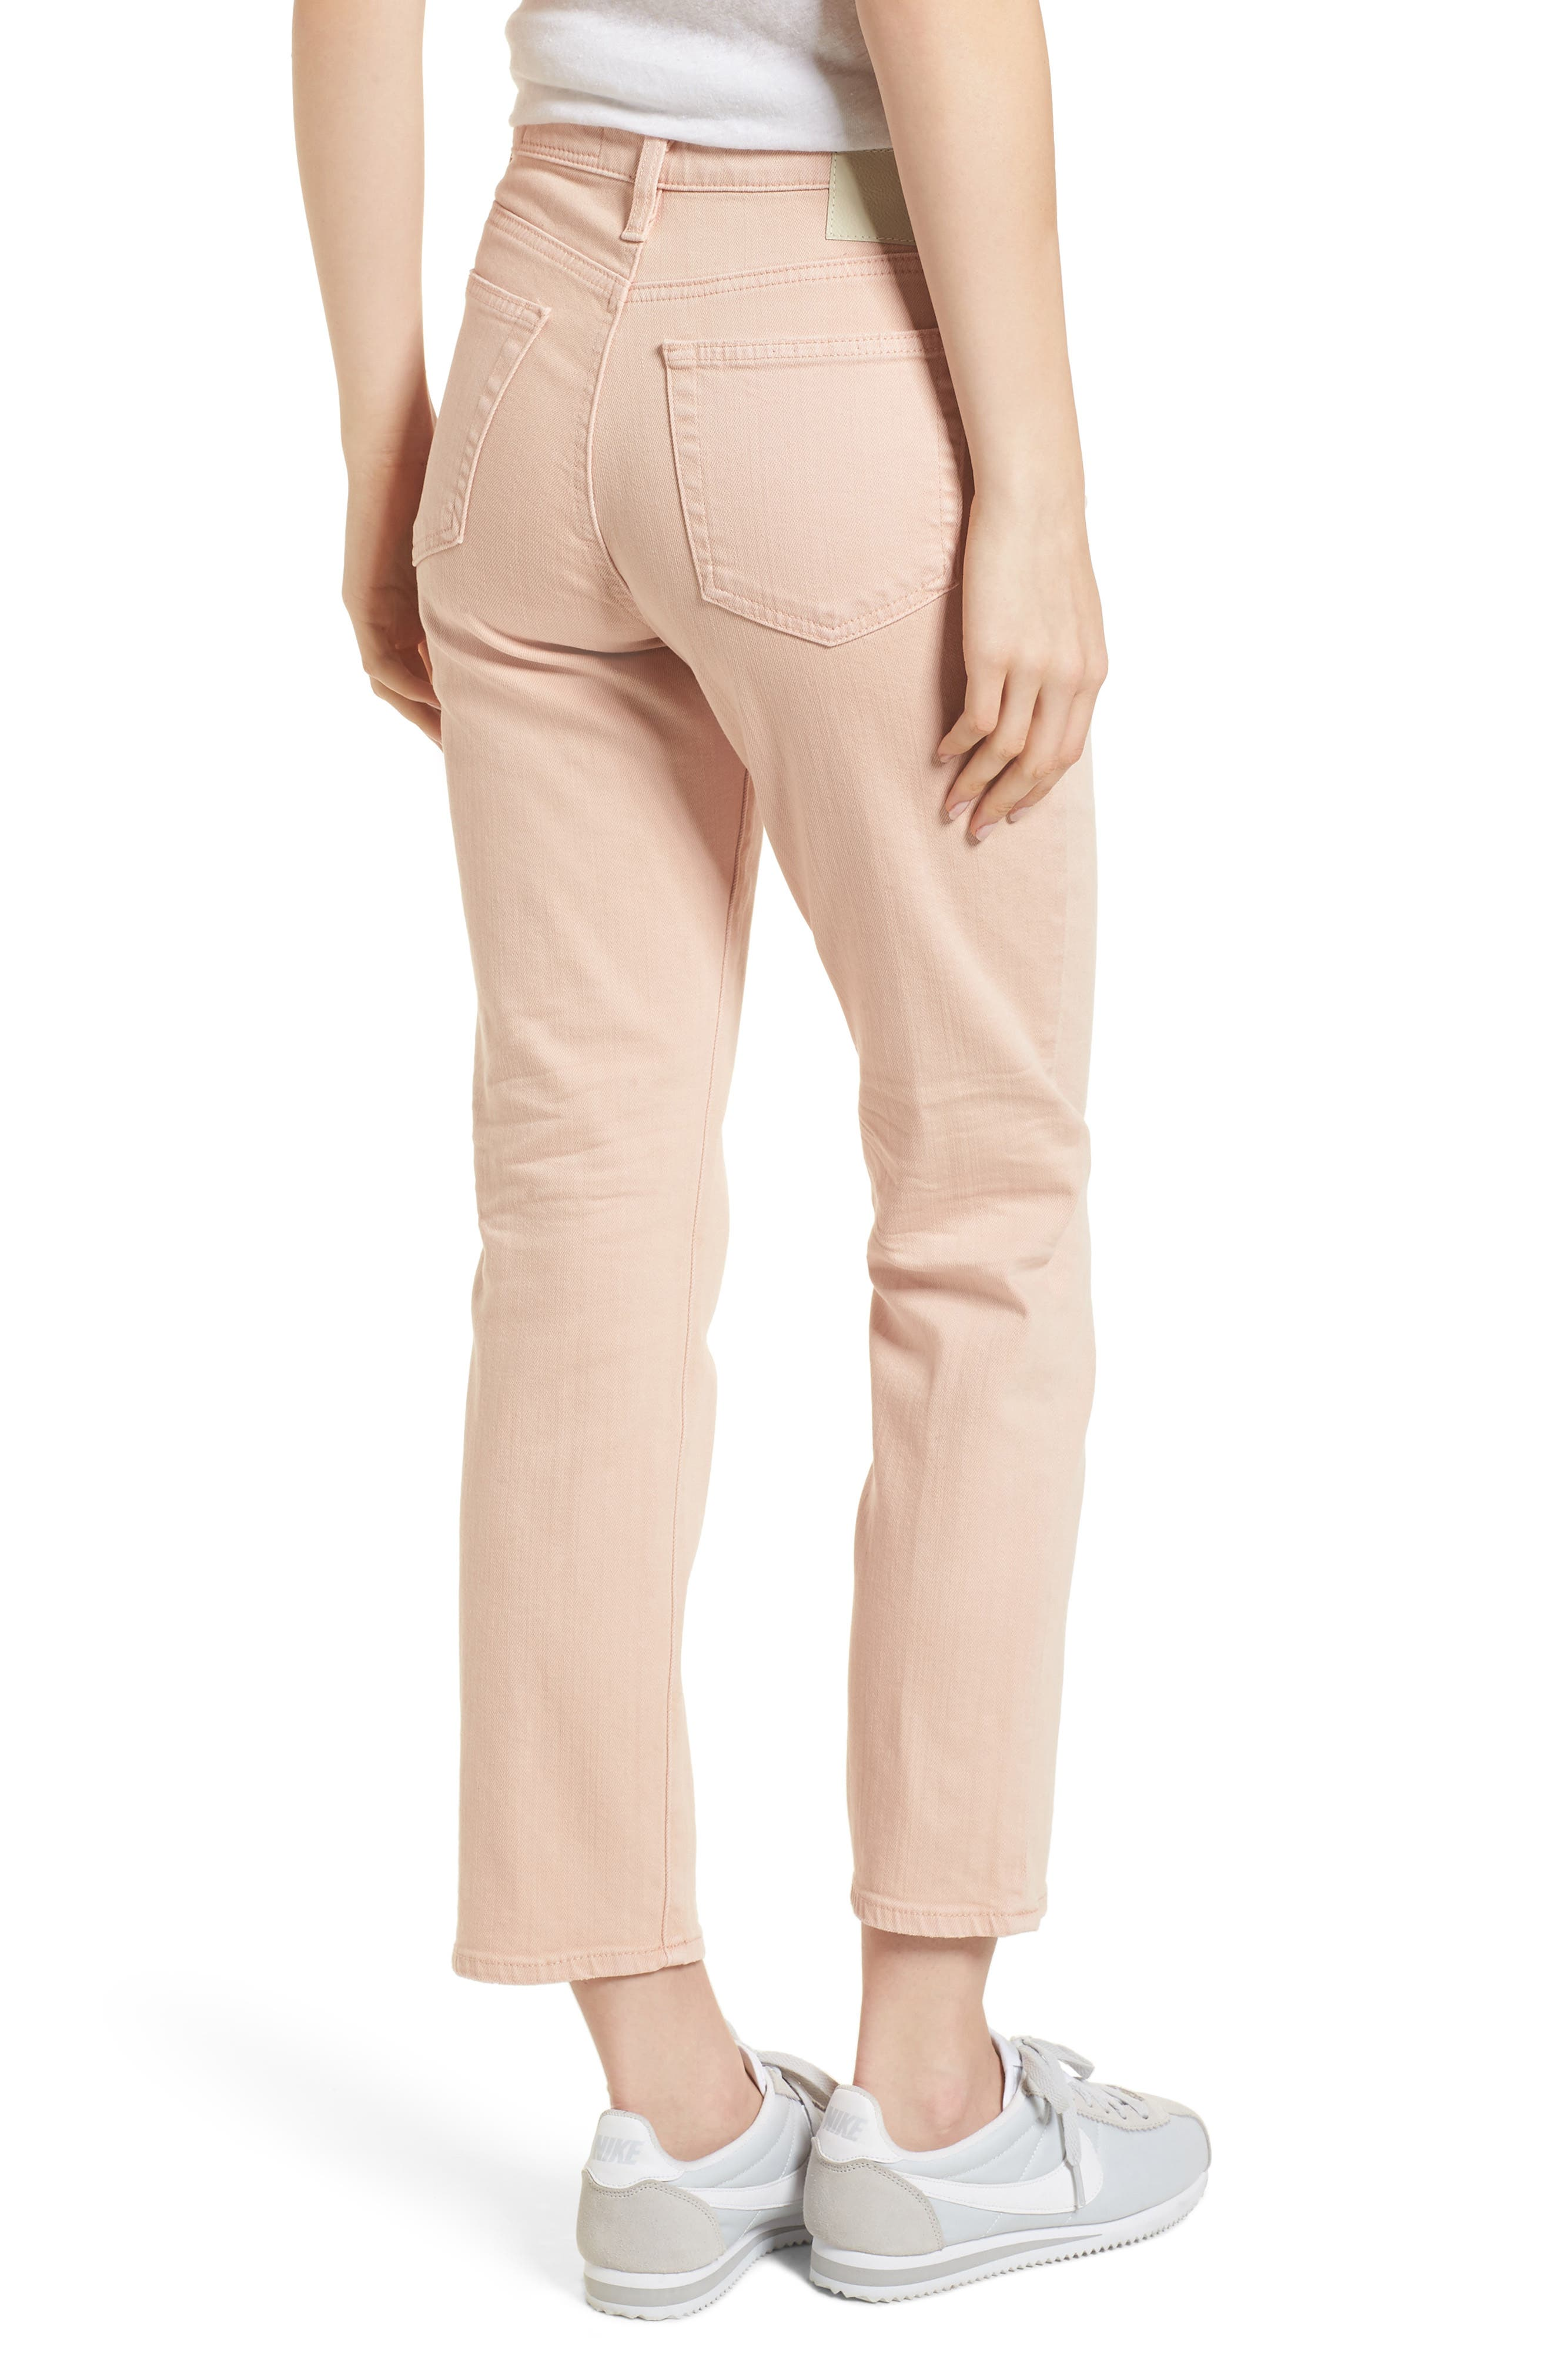 The Isabelle High Waist Crop Straight Leg Jeans,                             Alternate thumbnail 2, color,                             1 YEAR SULFUR ROSY ROGUE